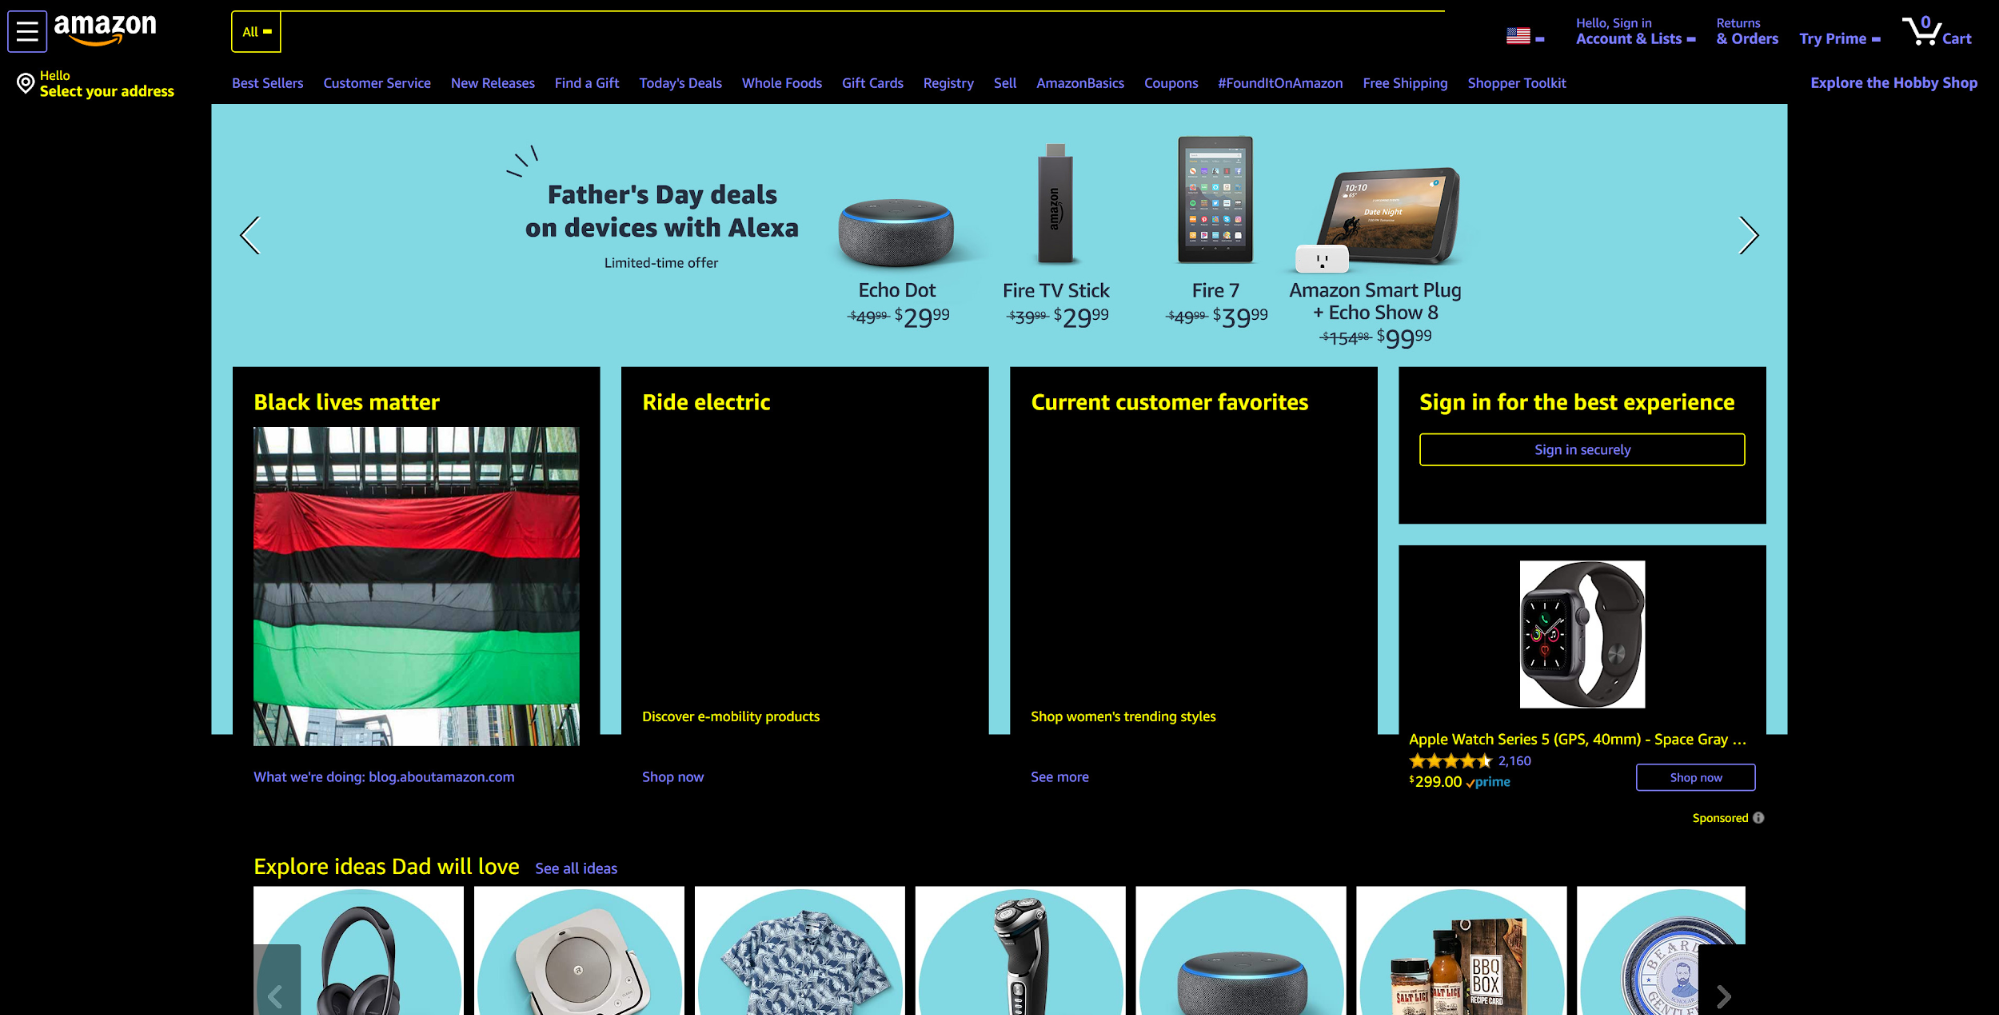 screenshot of high-contrast Amazon homepage with dark background